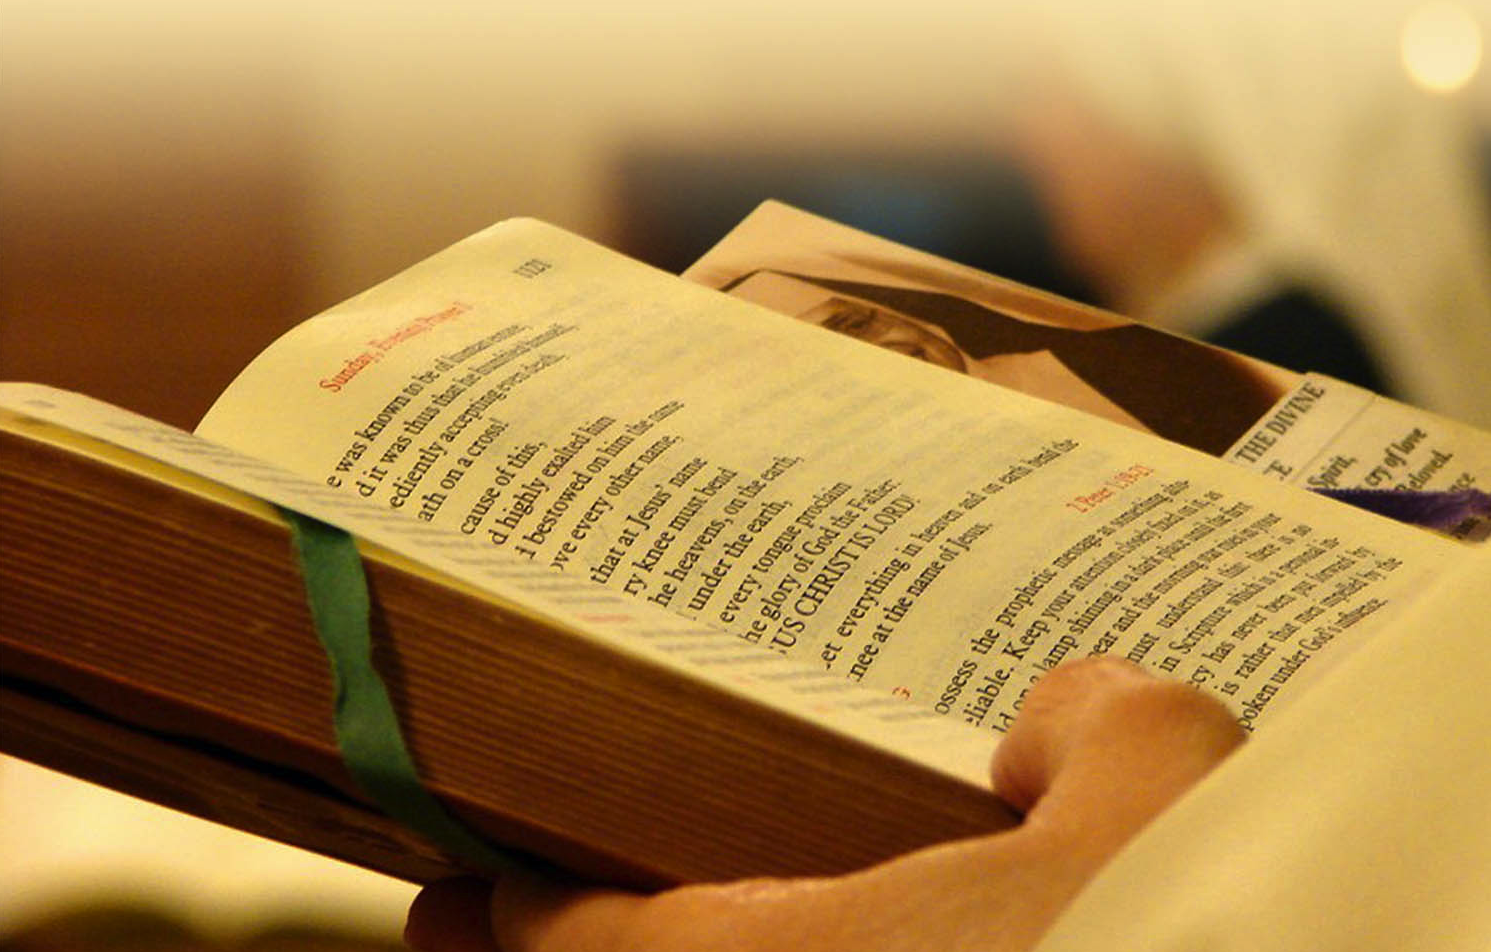 Please Join us for the Liturgy of the Hours